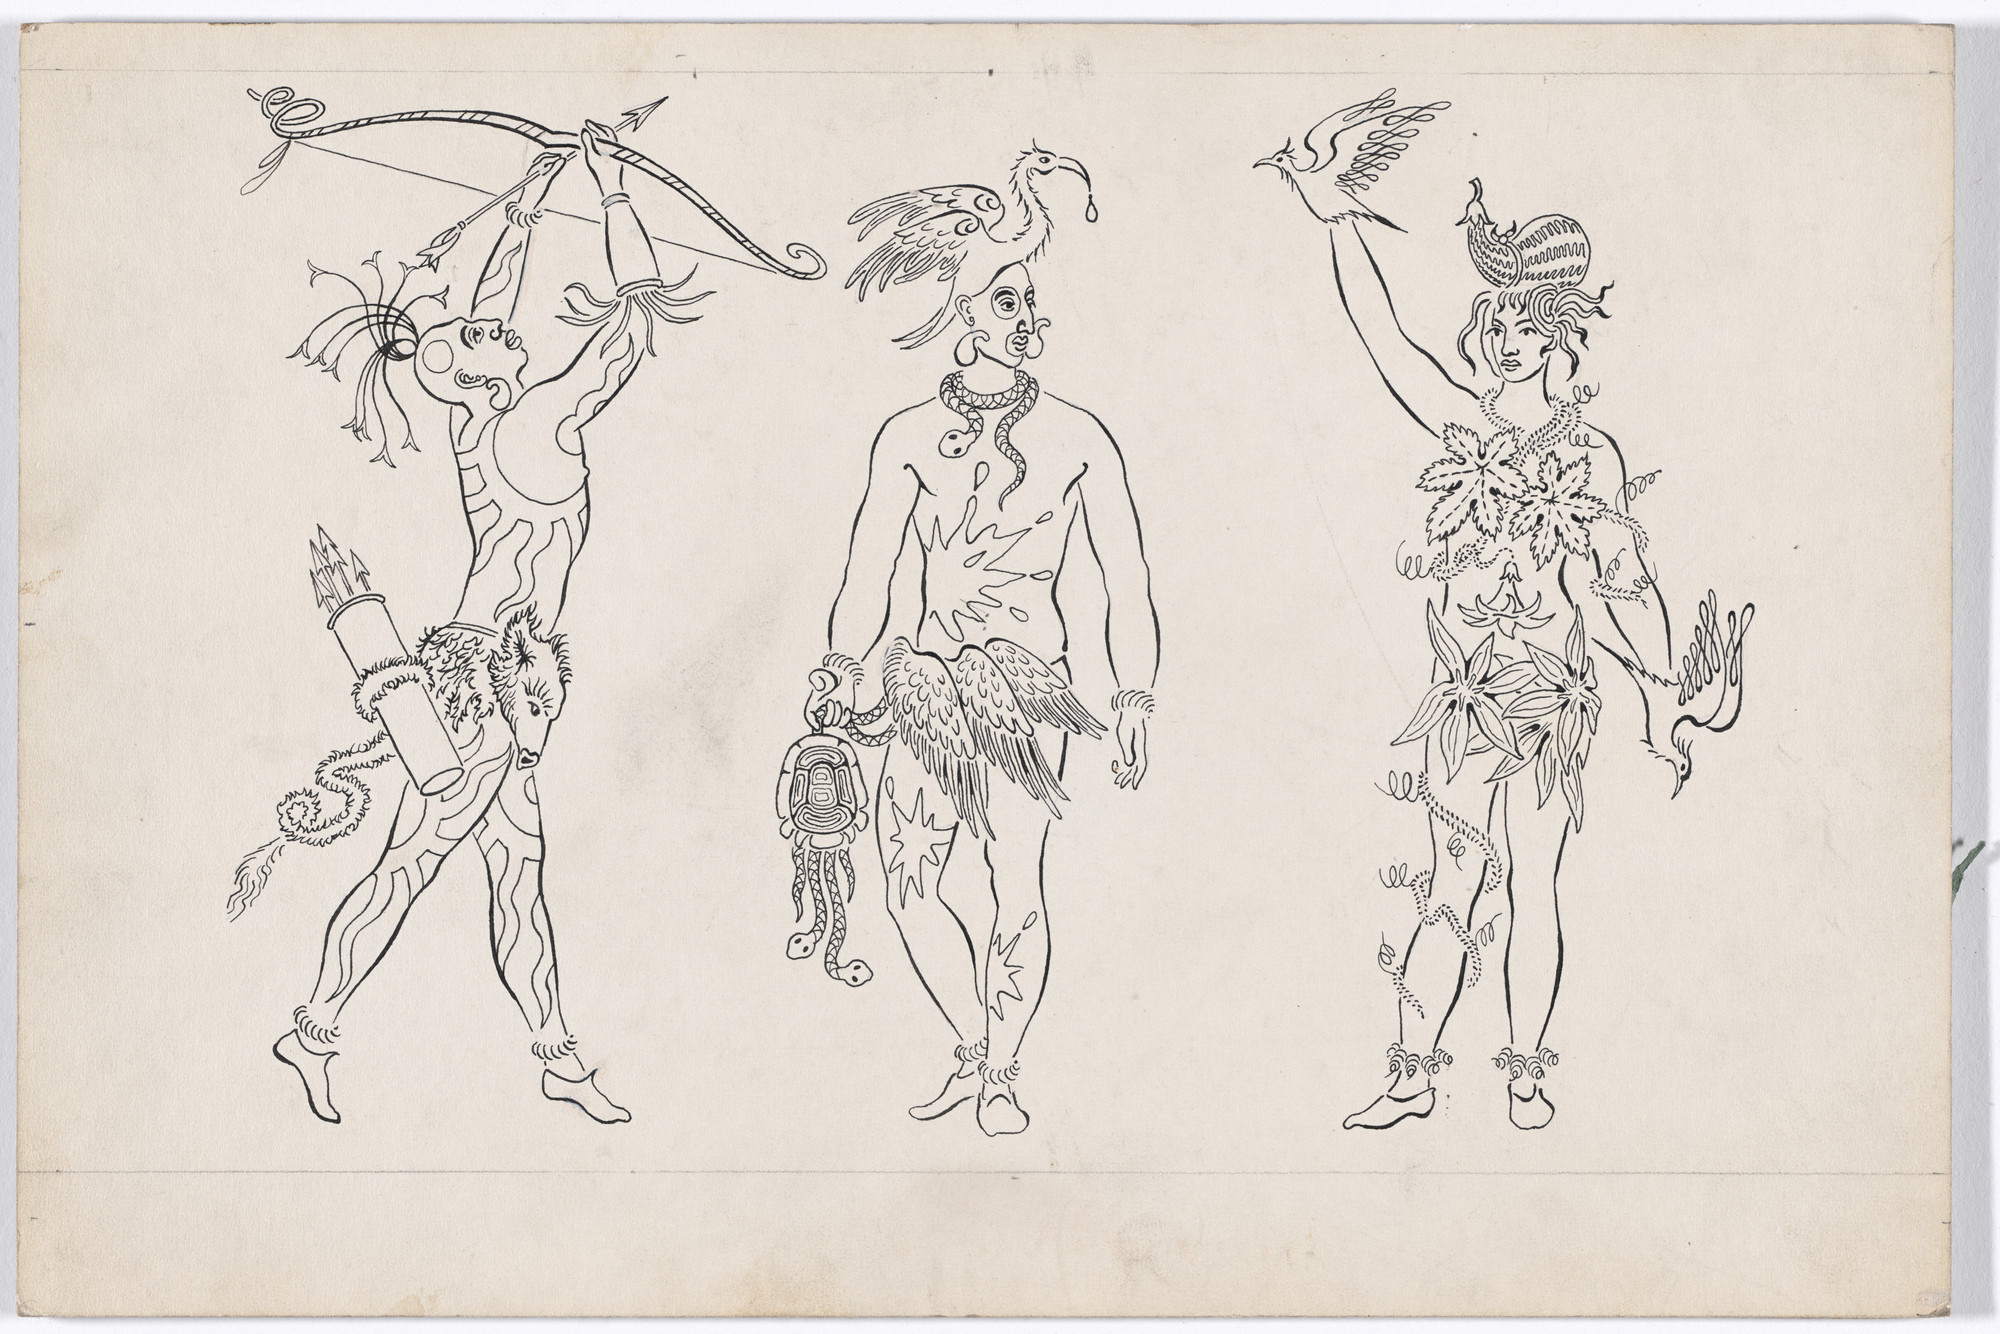 Karl Free. Two Indian Men and One Indian Girl. Costume design for the ballet Pocahontas. c. 1936